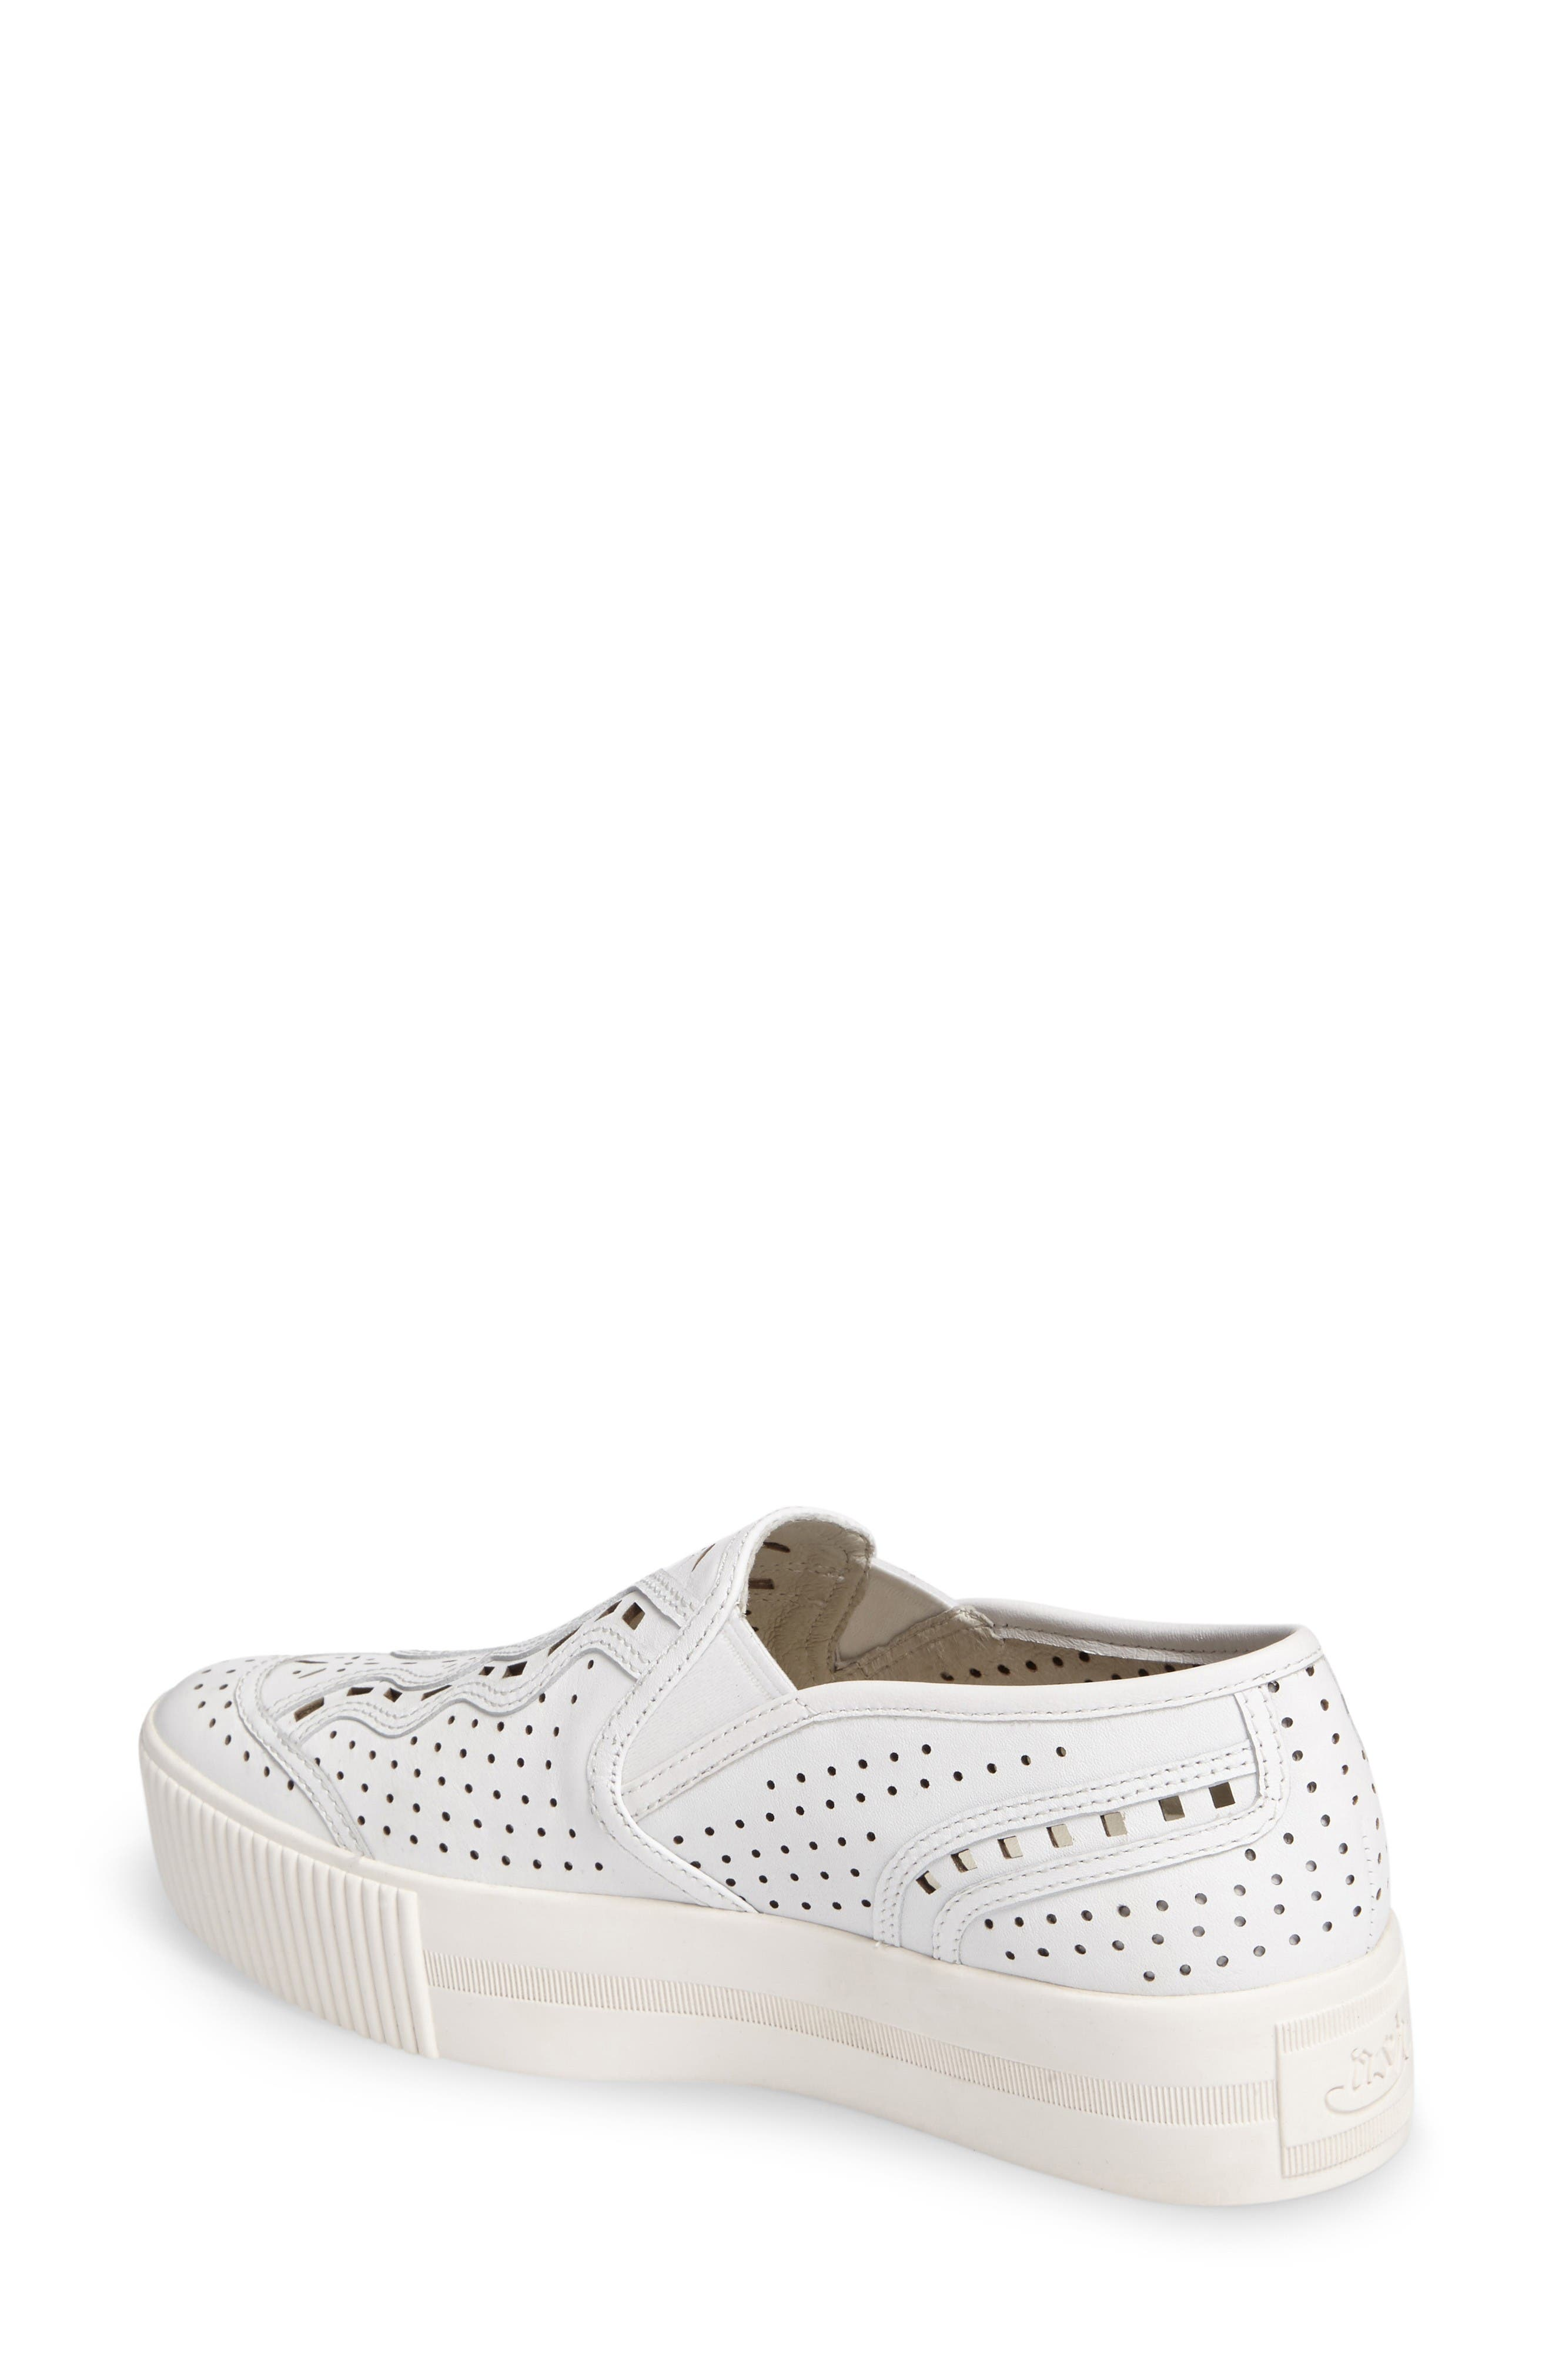 Alternate Image 2  - Ash Kingston Perforated Platform Sneaker (Women)